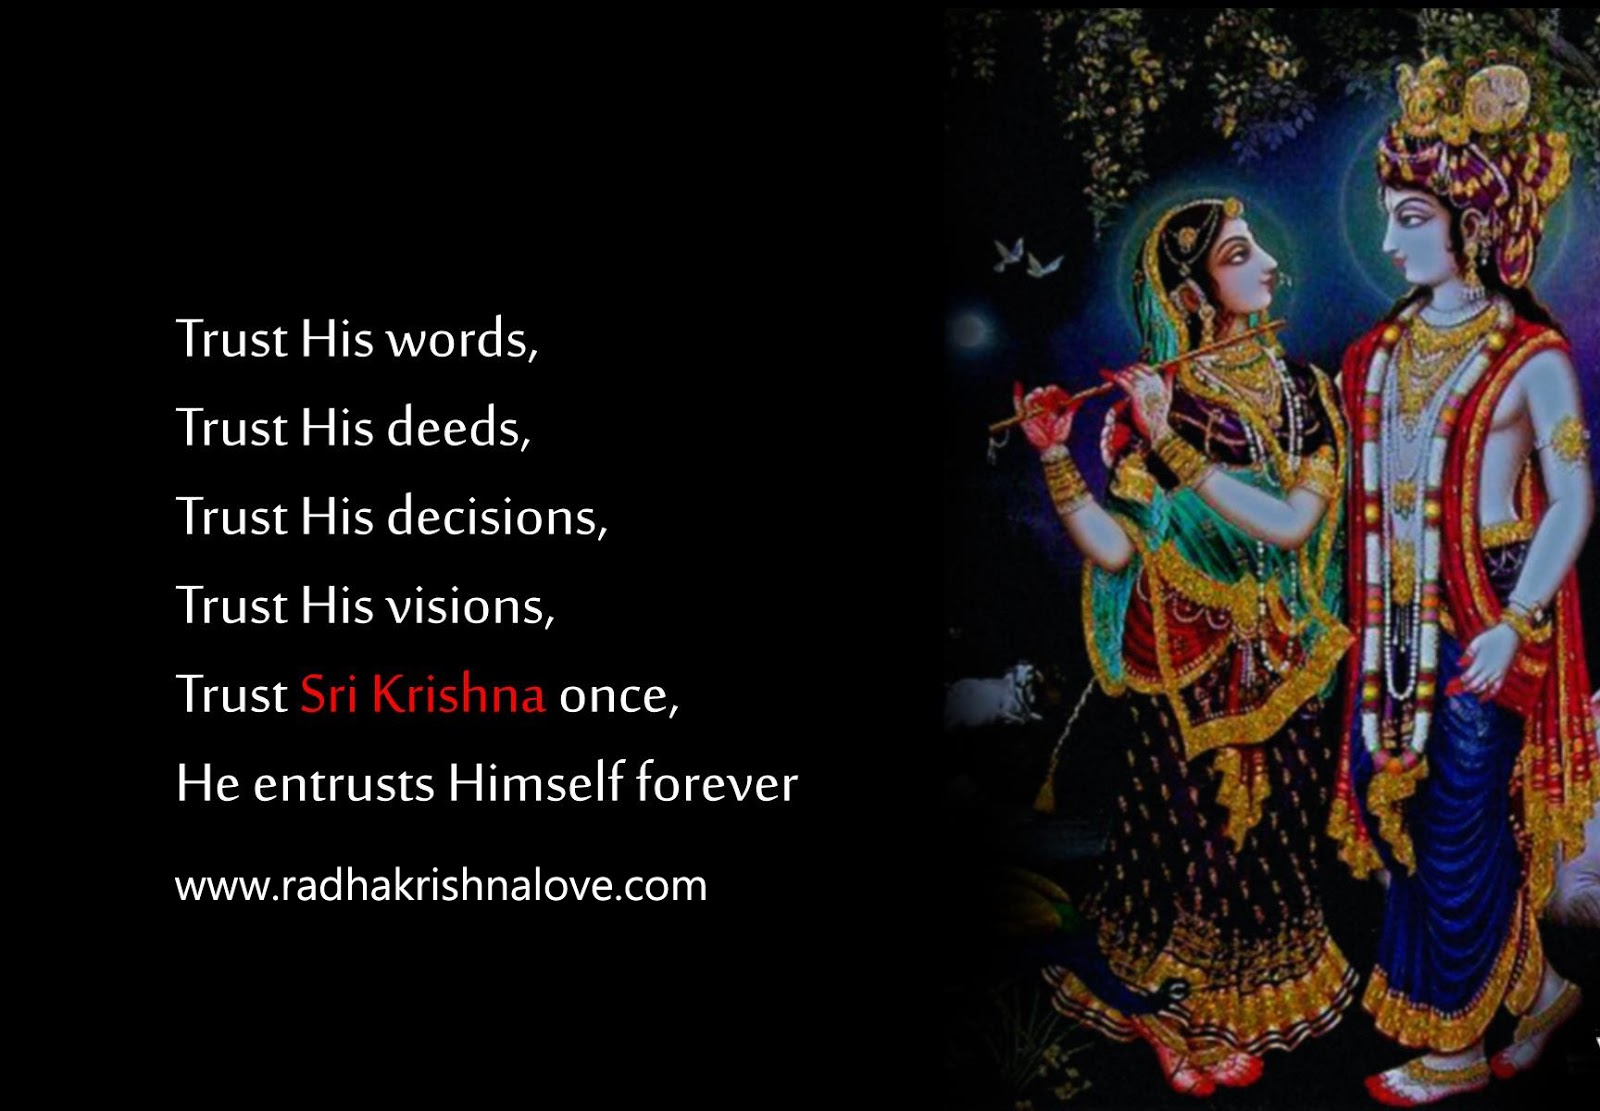 Radha Krishna Love Quotes Images Hd The Galleries Of Hd Wallpaper